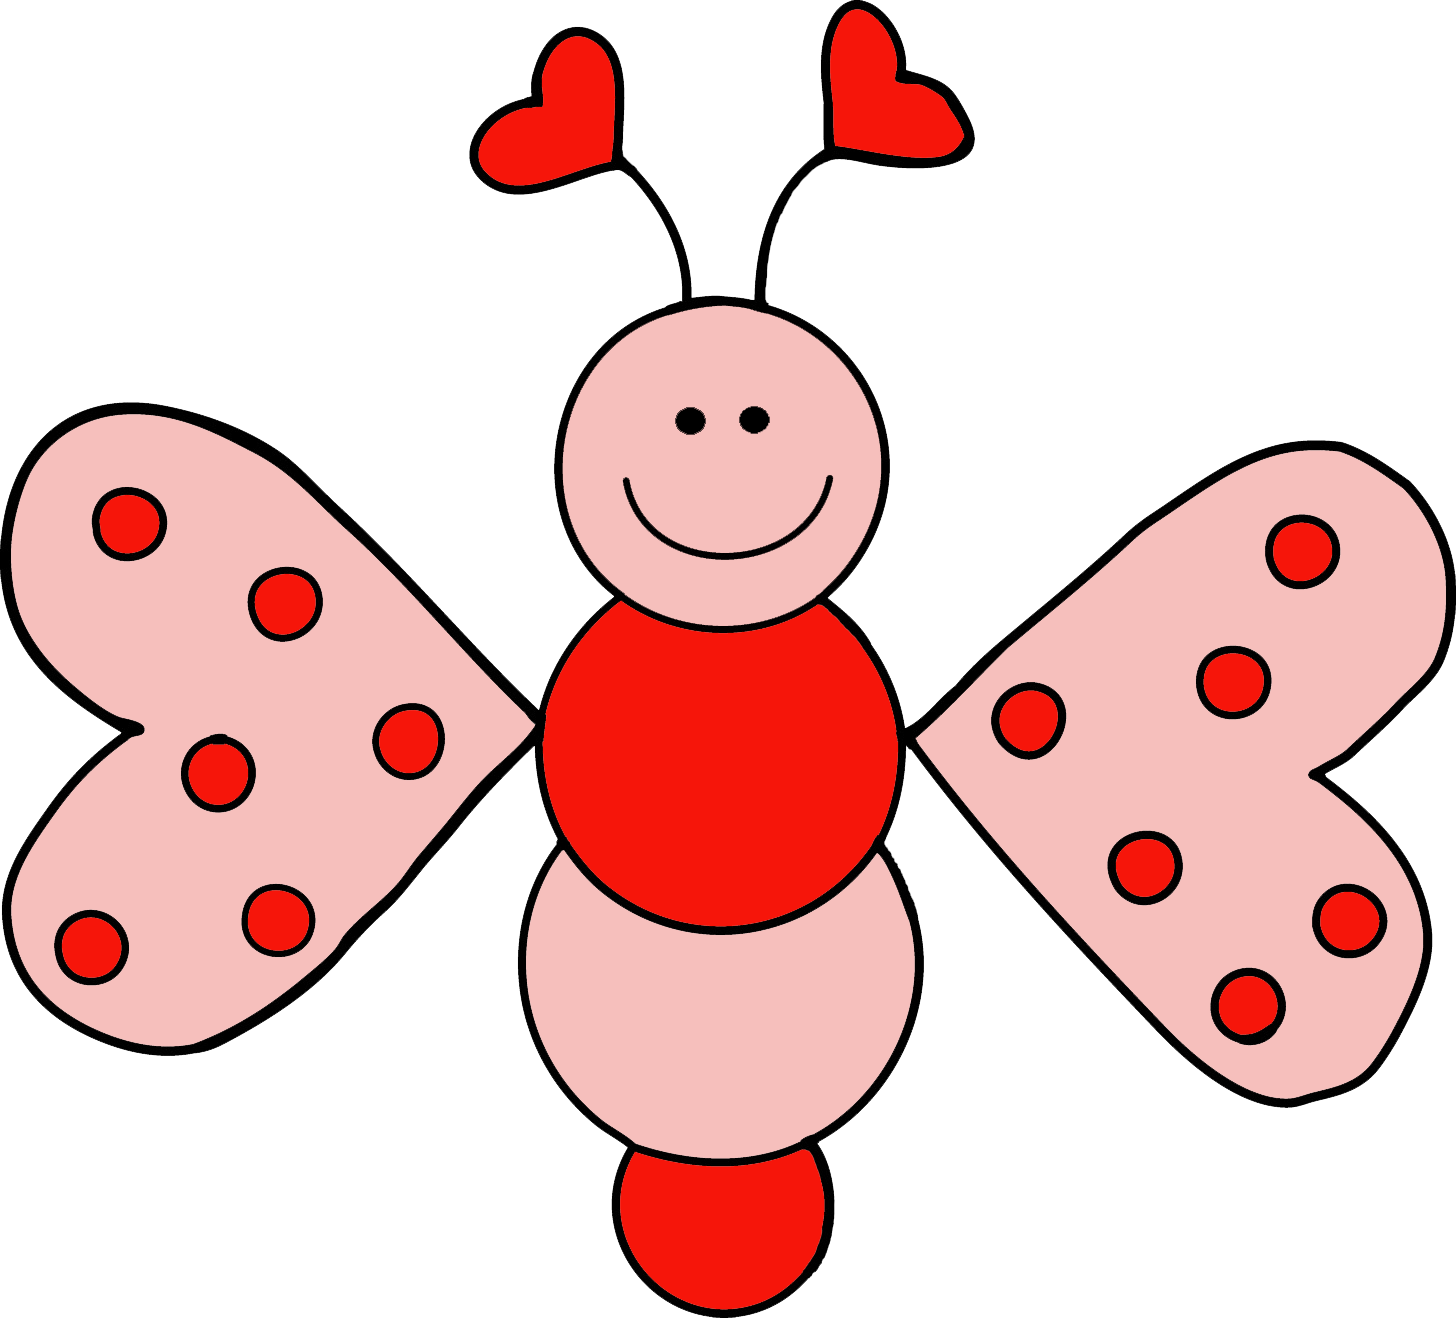 Love Bug Clipart - Clipart Kid